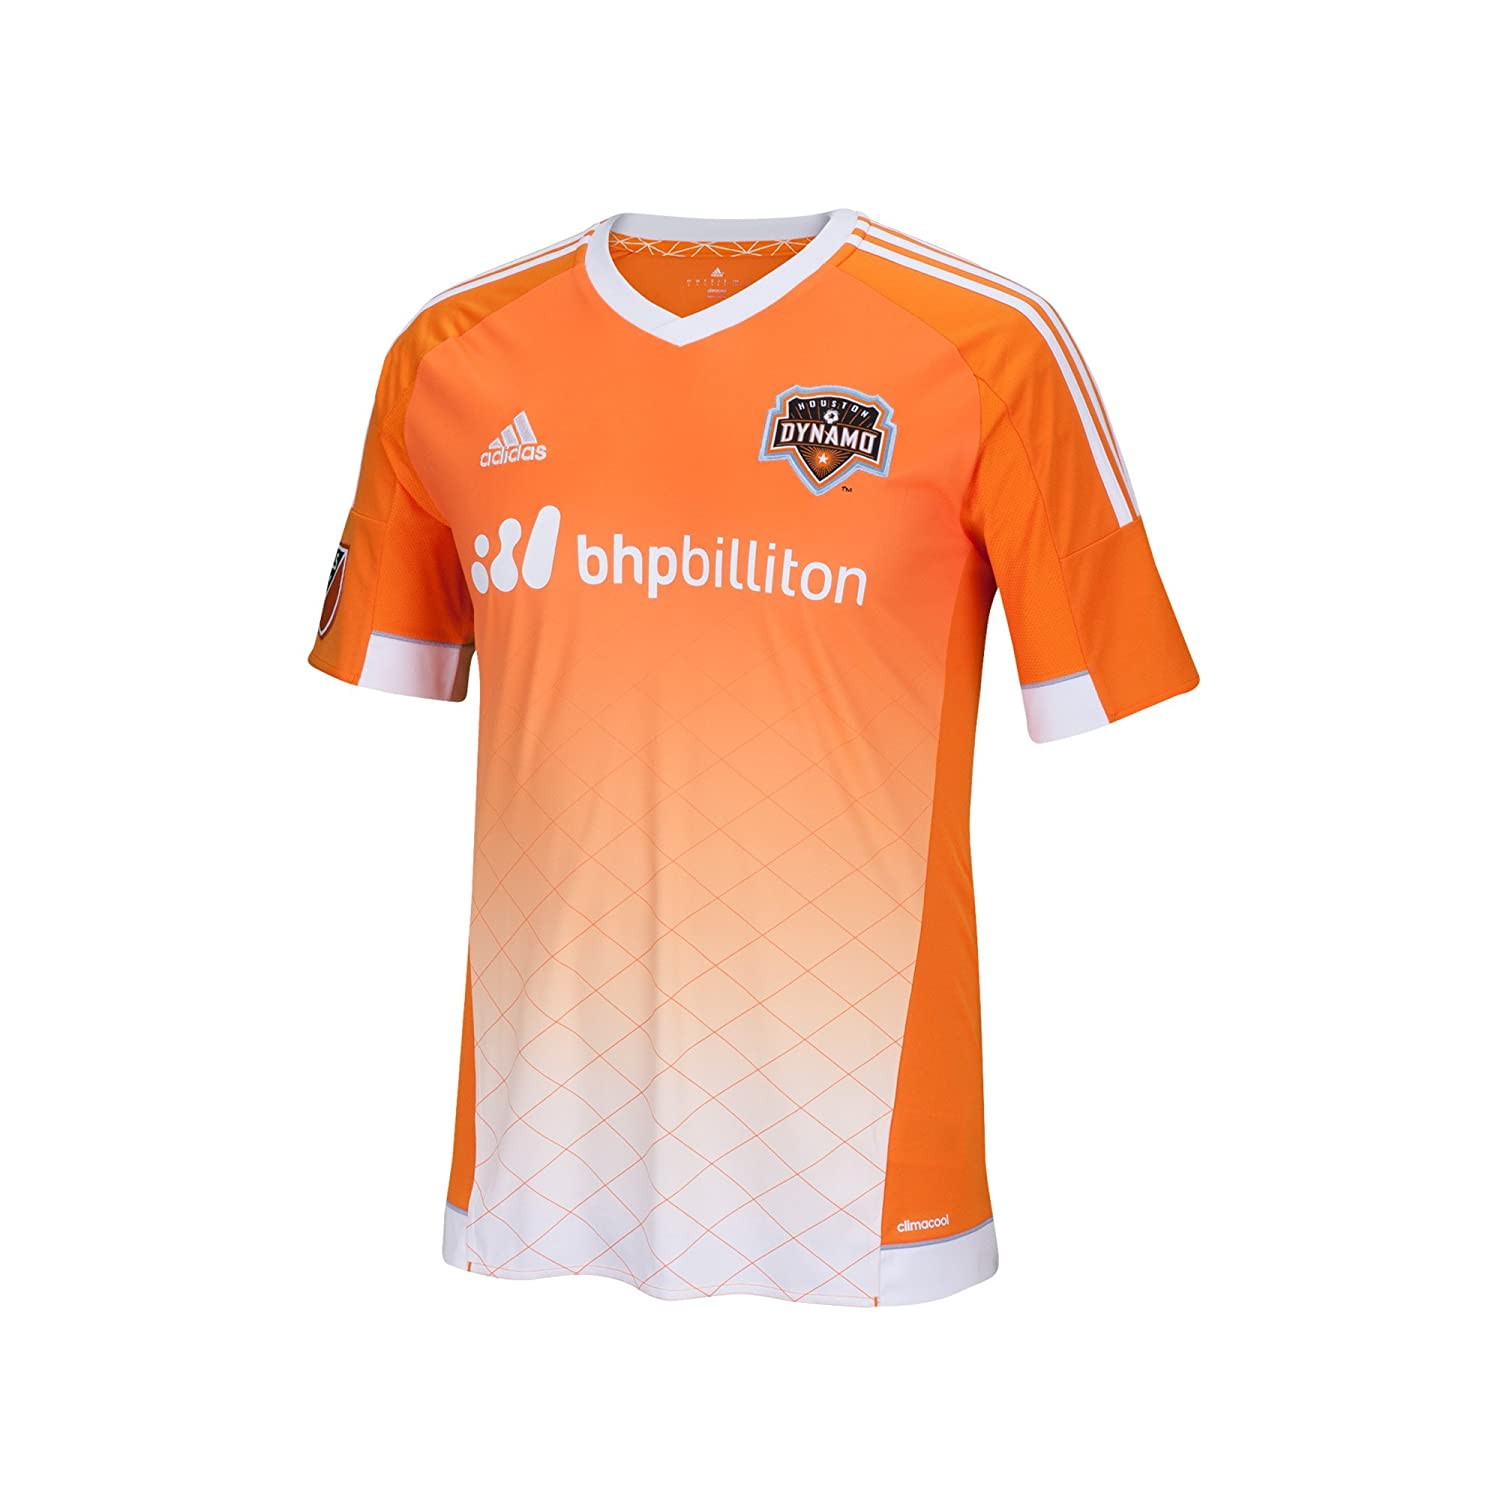 762c5be9f1e Amazon.com : MLS teen-boys Replica Short Sleeve Jersey : Sports & Outdoors